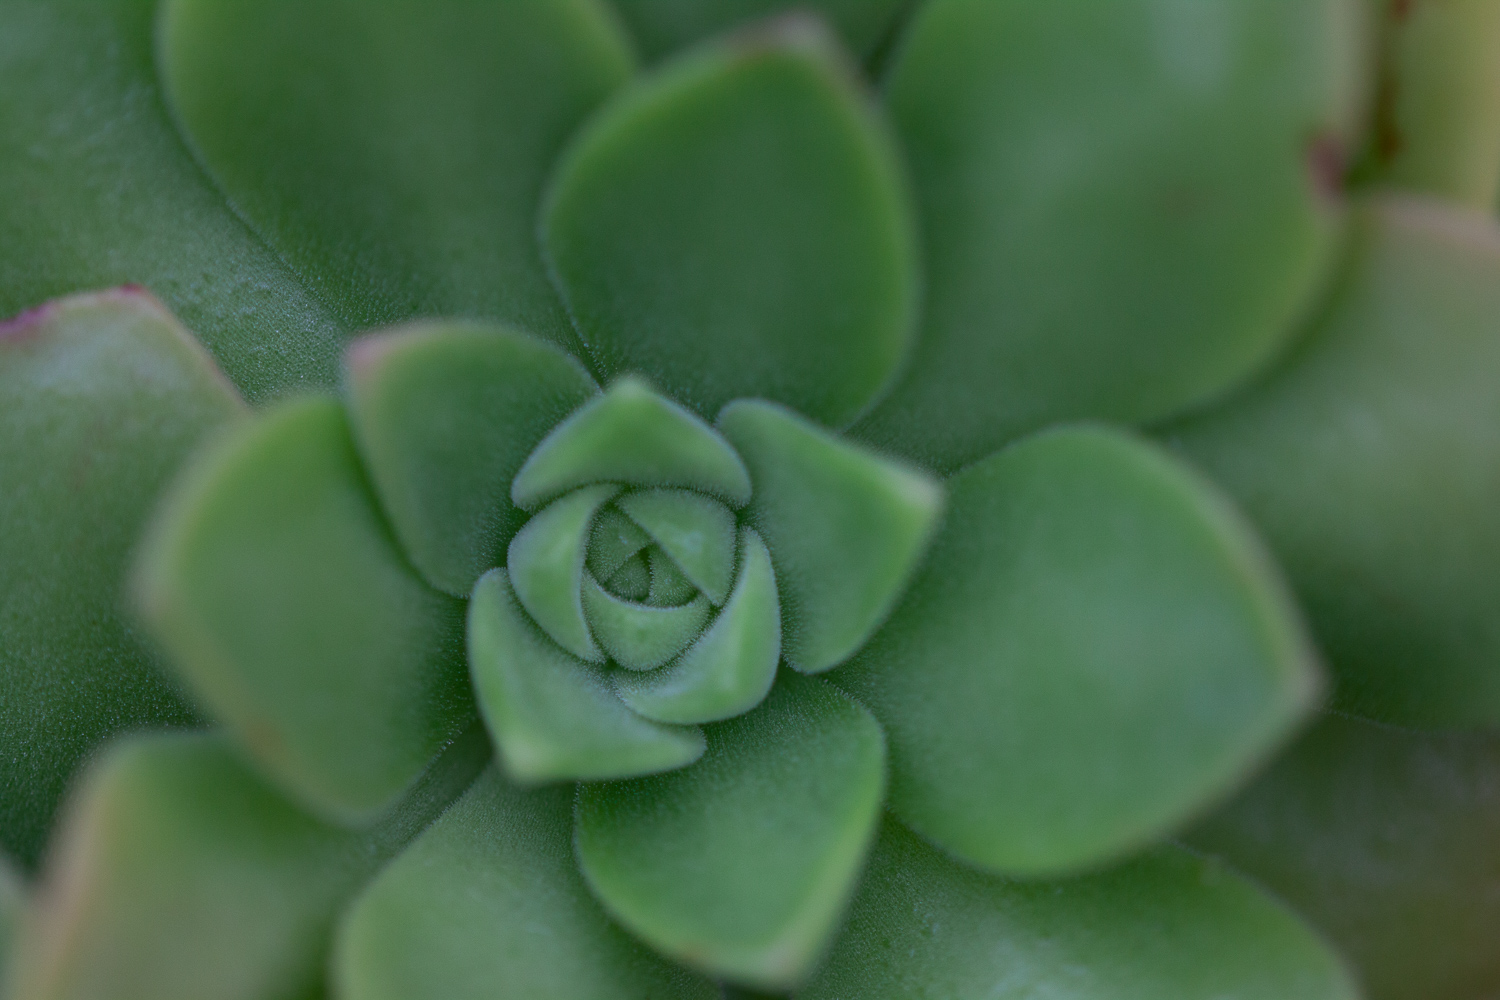 succulent plant - 5 Ways to Make Extraordinary Photographs of Ordinary Subjects